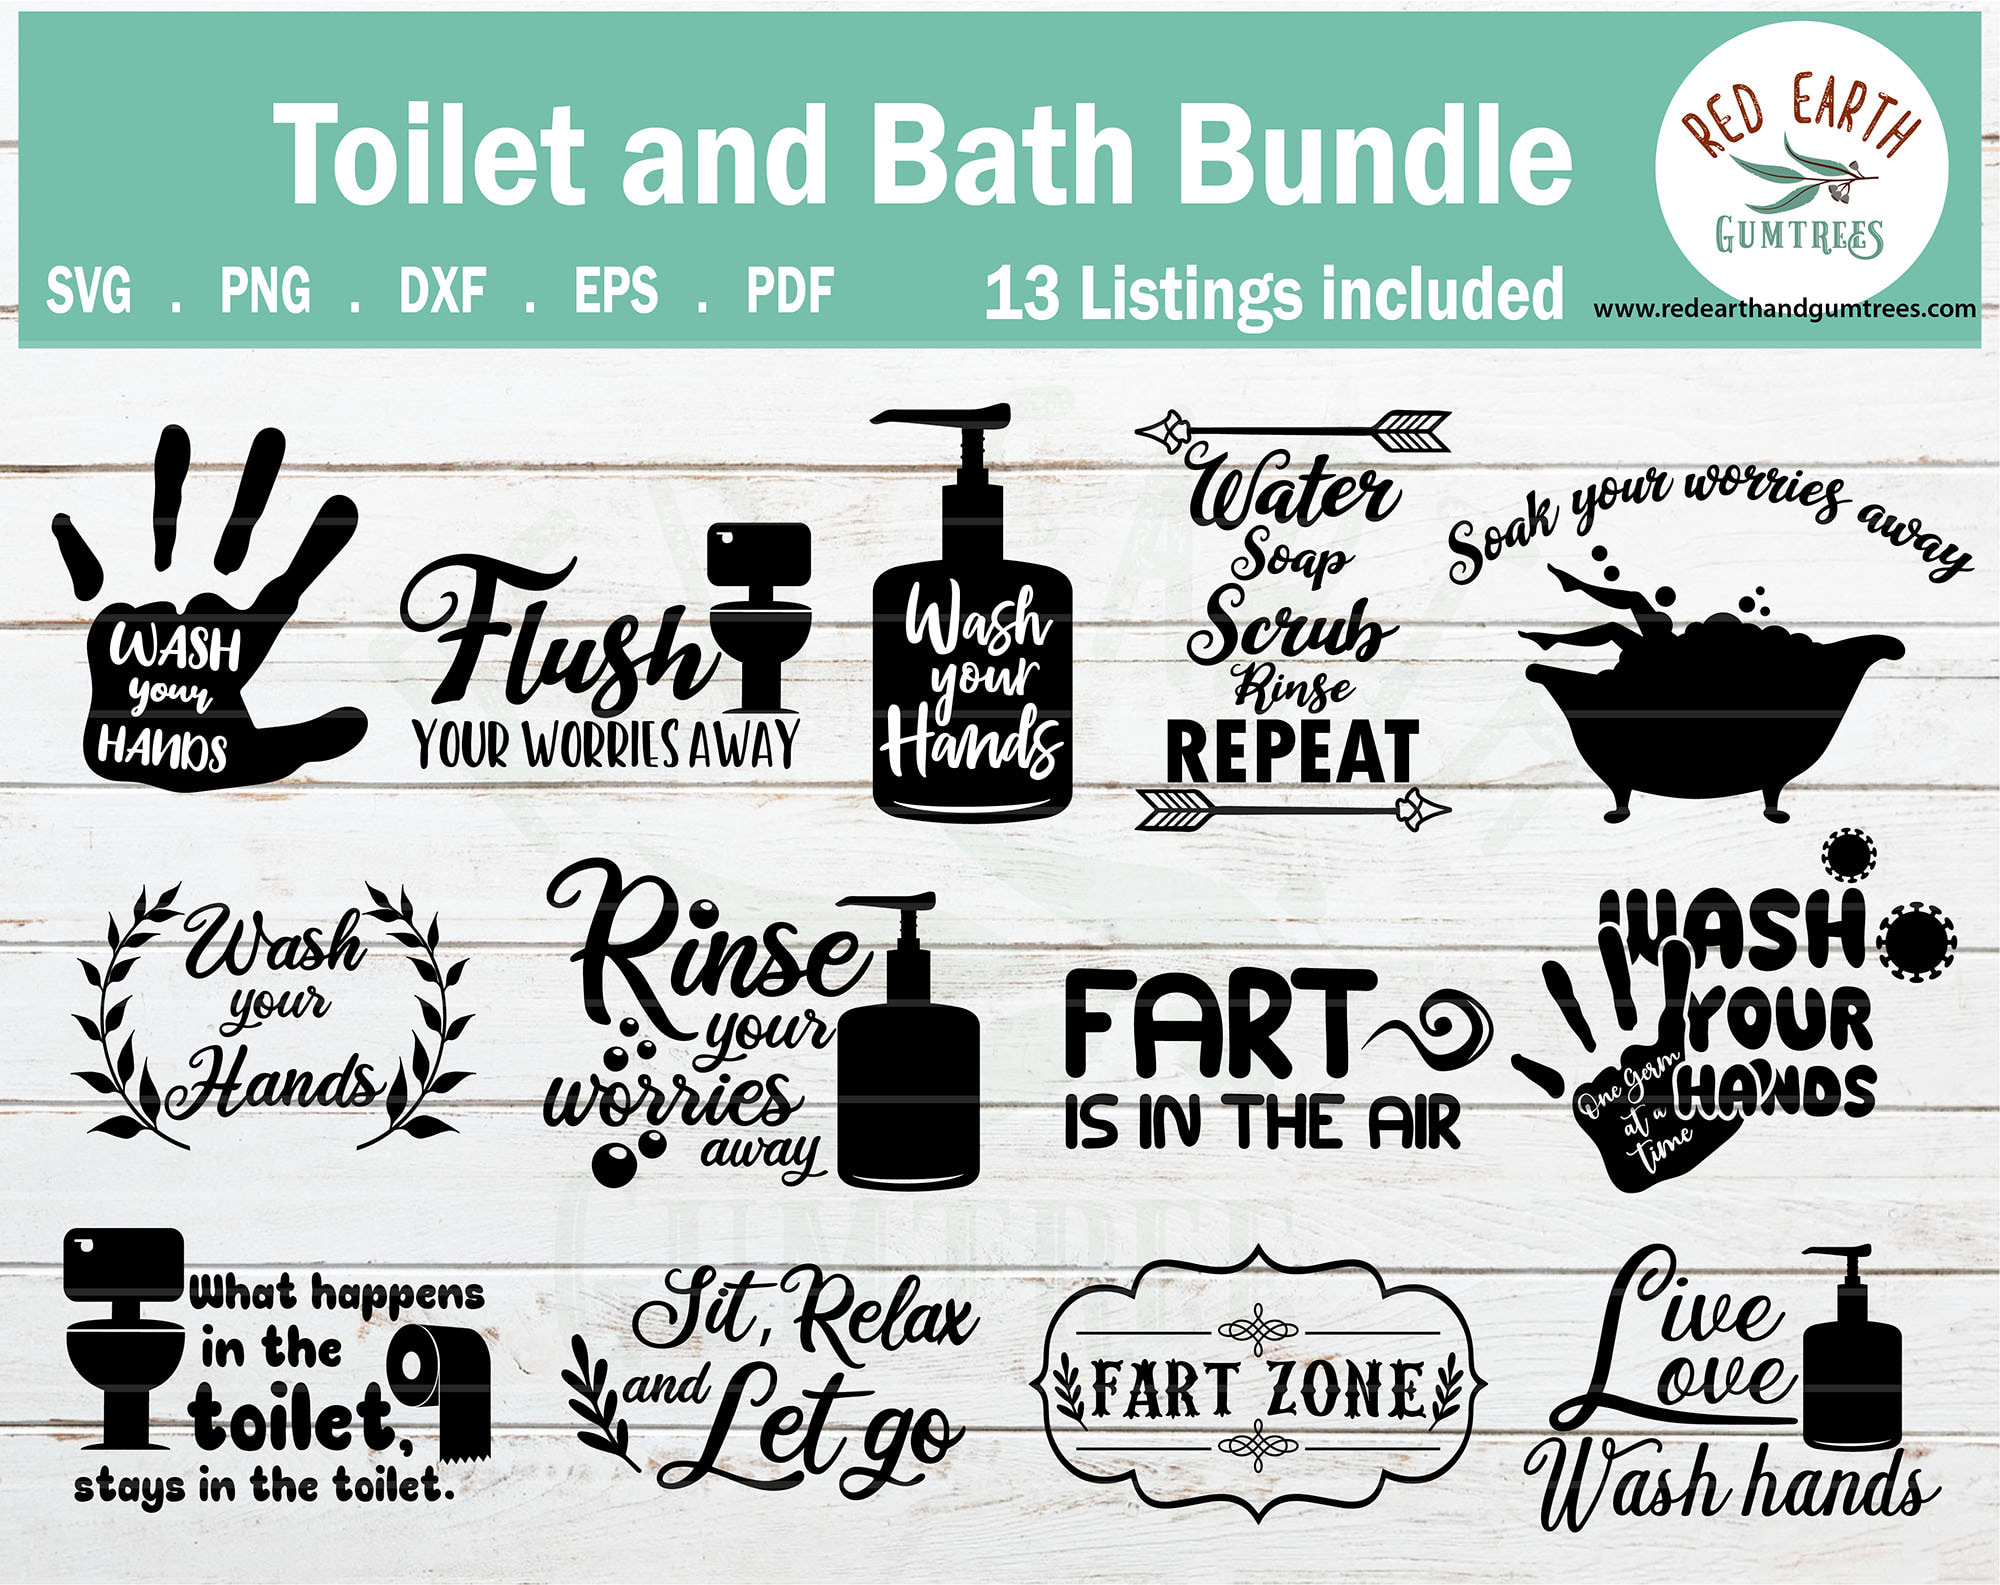 Funny Toilet Svg Toilet Sayings Svg Toilet Quotes Svg Wash Your Hands Svg Funny Bath Quotes Funny Fart Quote Shower Quote Svg Boho Toilet Svg Funny Bathroom Svg Bathroom Quote Svg Bathroom Sign Making Bath Room Decal Svg Rustic Bathroom Svg Farmhouse